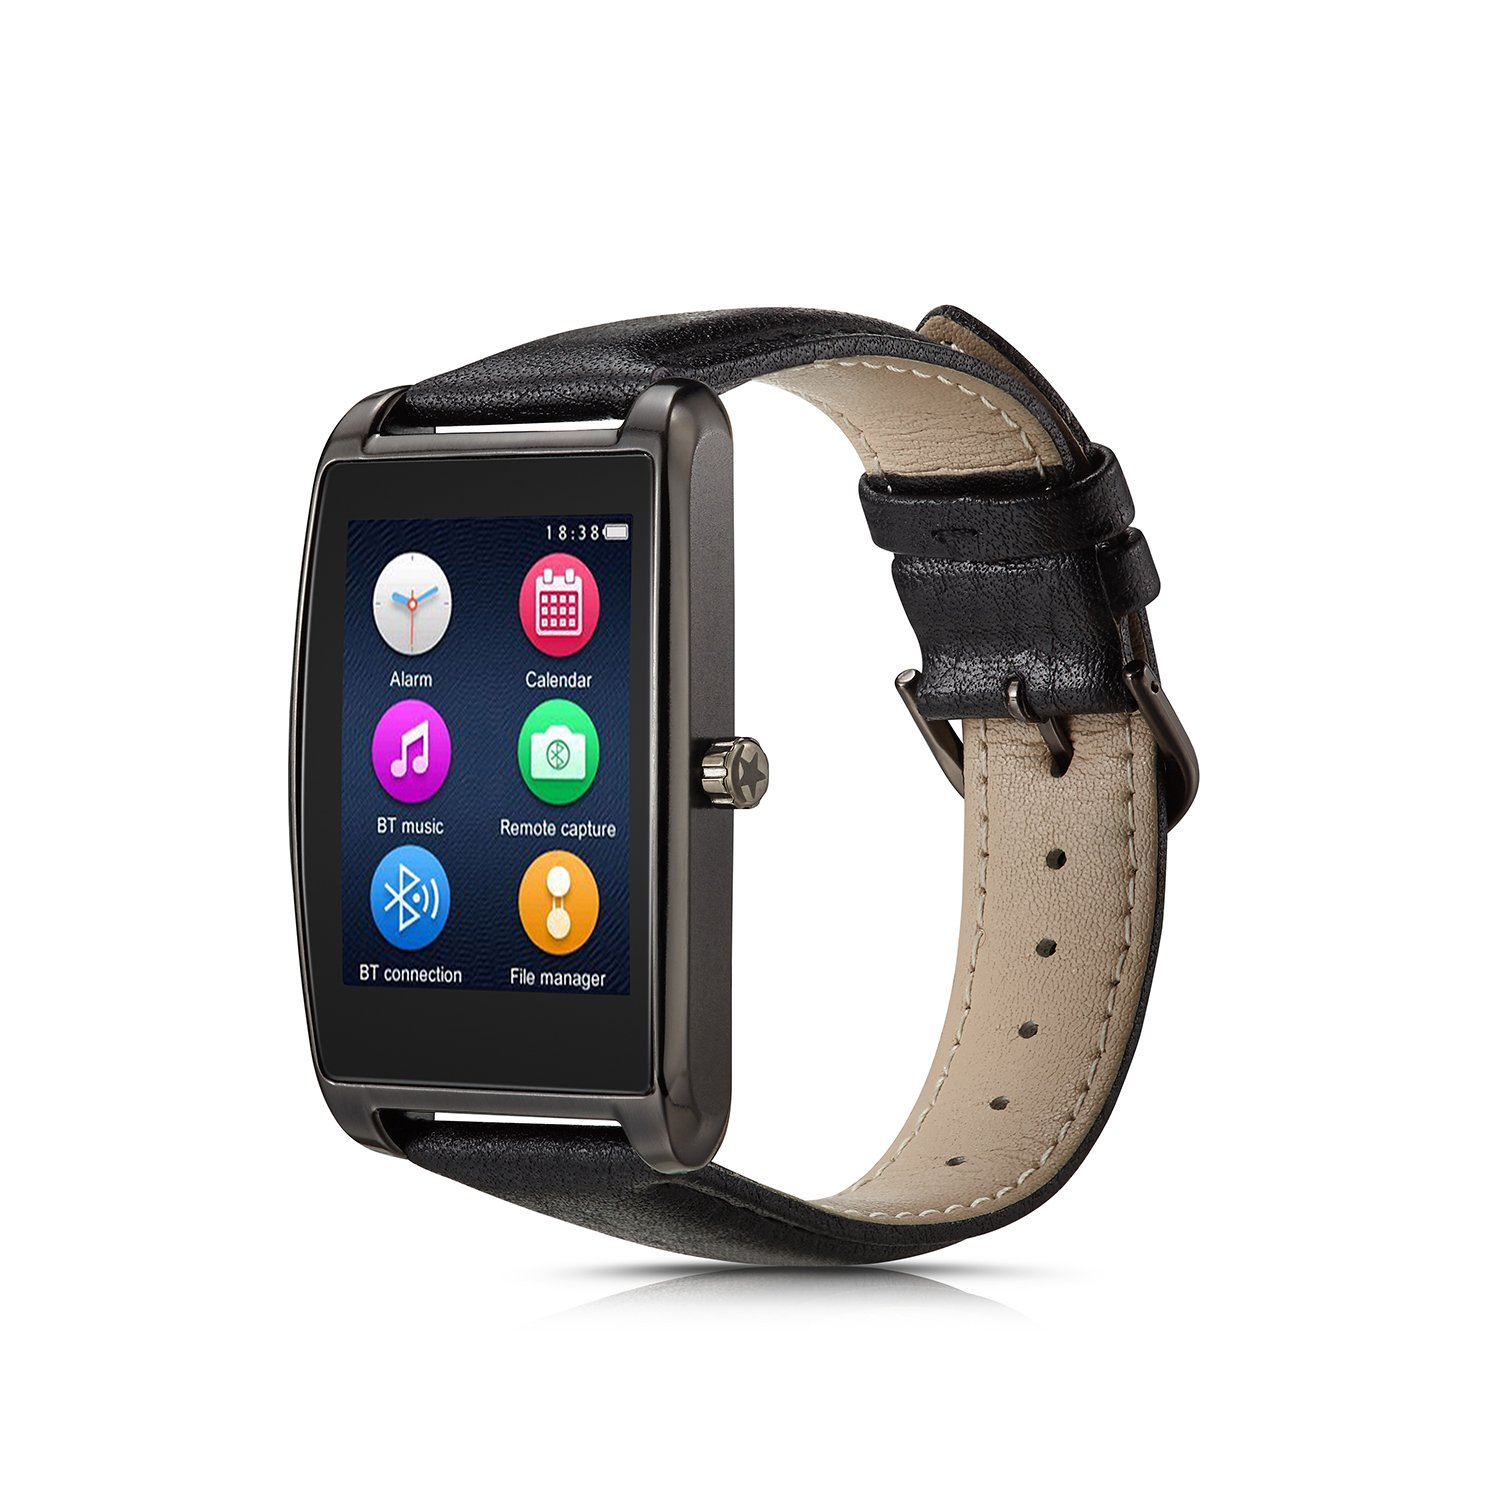 Le Pan 1.6'' Touchscreen Smartwatch for Android & iOS - Gunmetal (L11-Gunmetal)